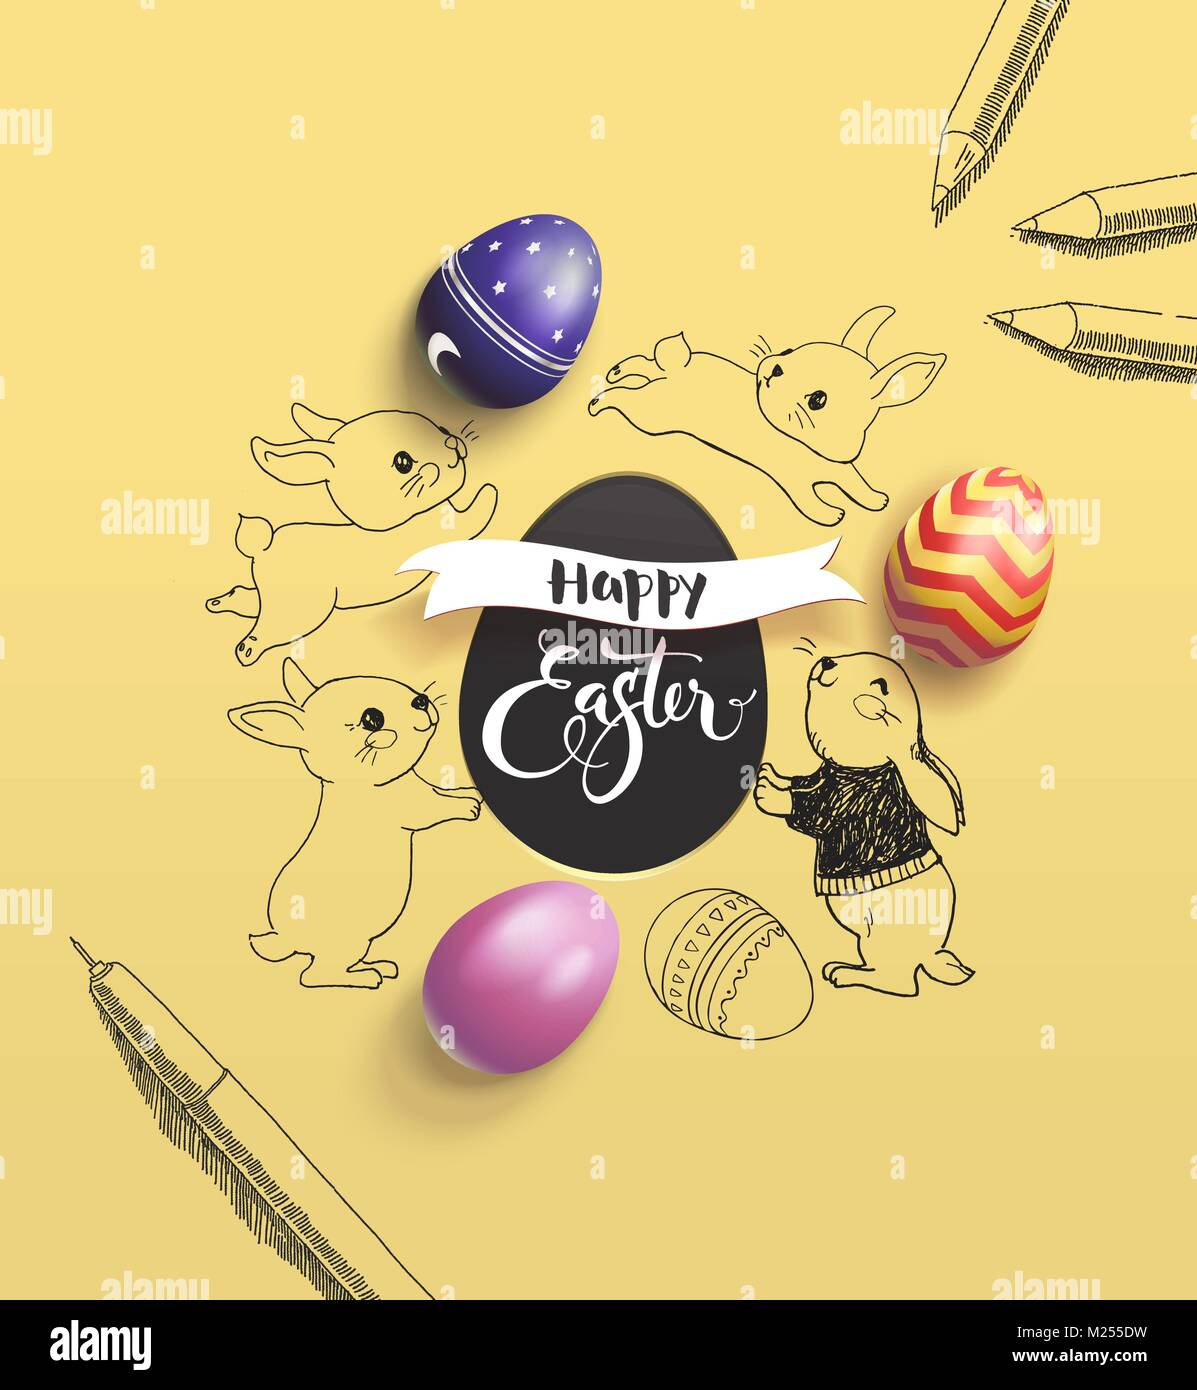 Happy Easter holiday wish surrounded by lovely baby bunnies, colorful decorative eggs, pen and pencil on yellow Stock Vector